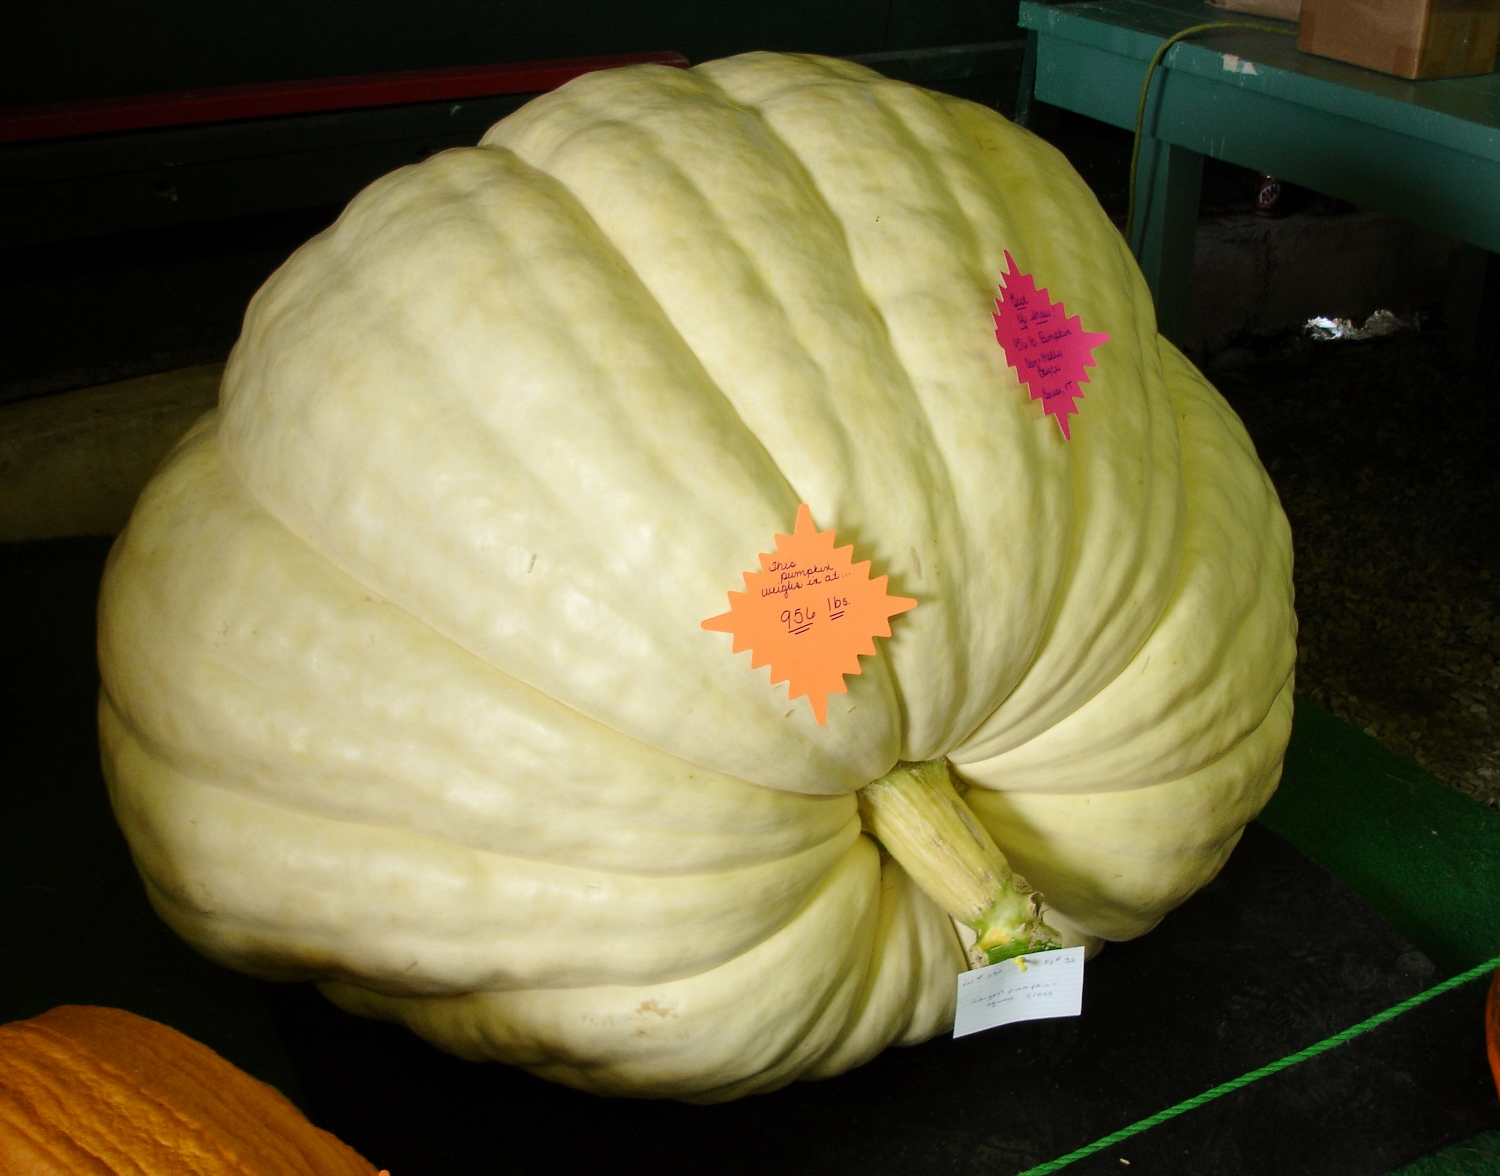 The giant pumpkins, homemade jarred pickled vegetables, quilting competitions... it's all here,